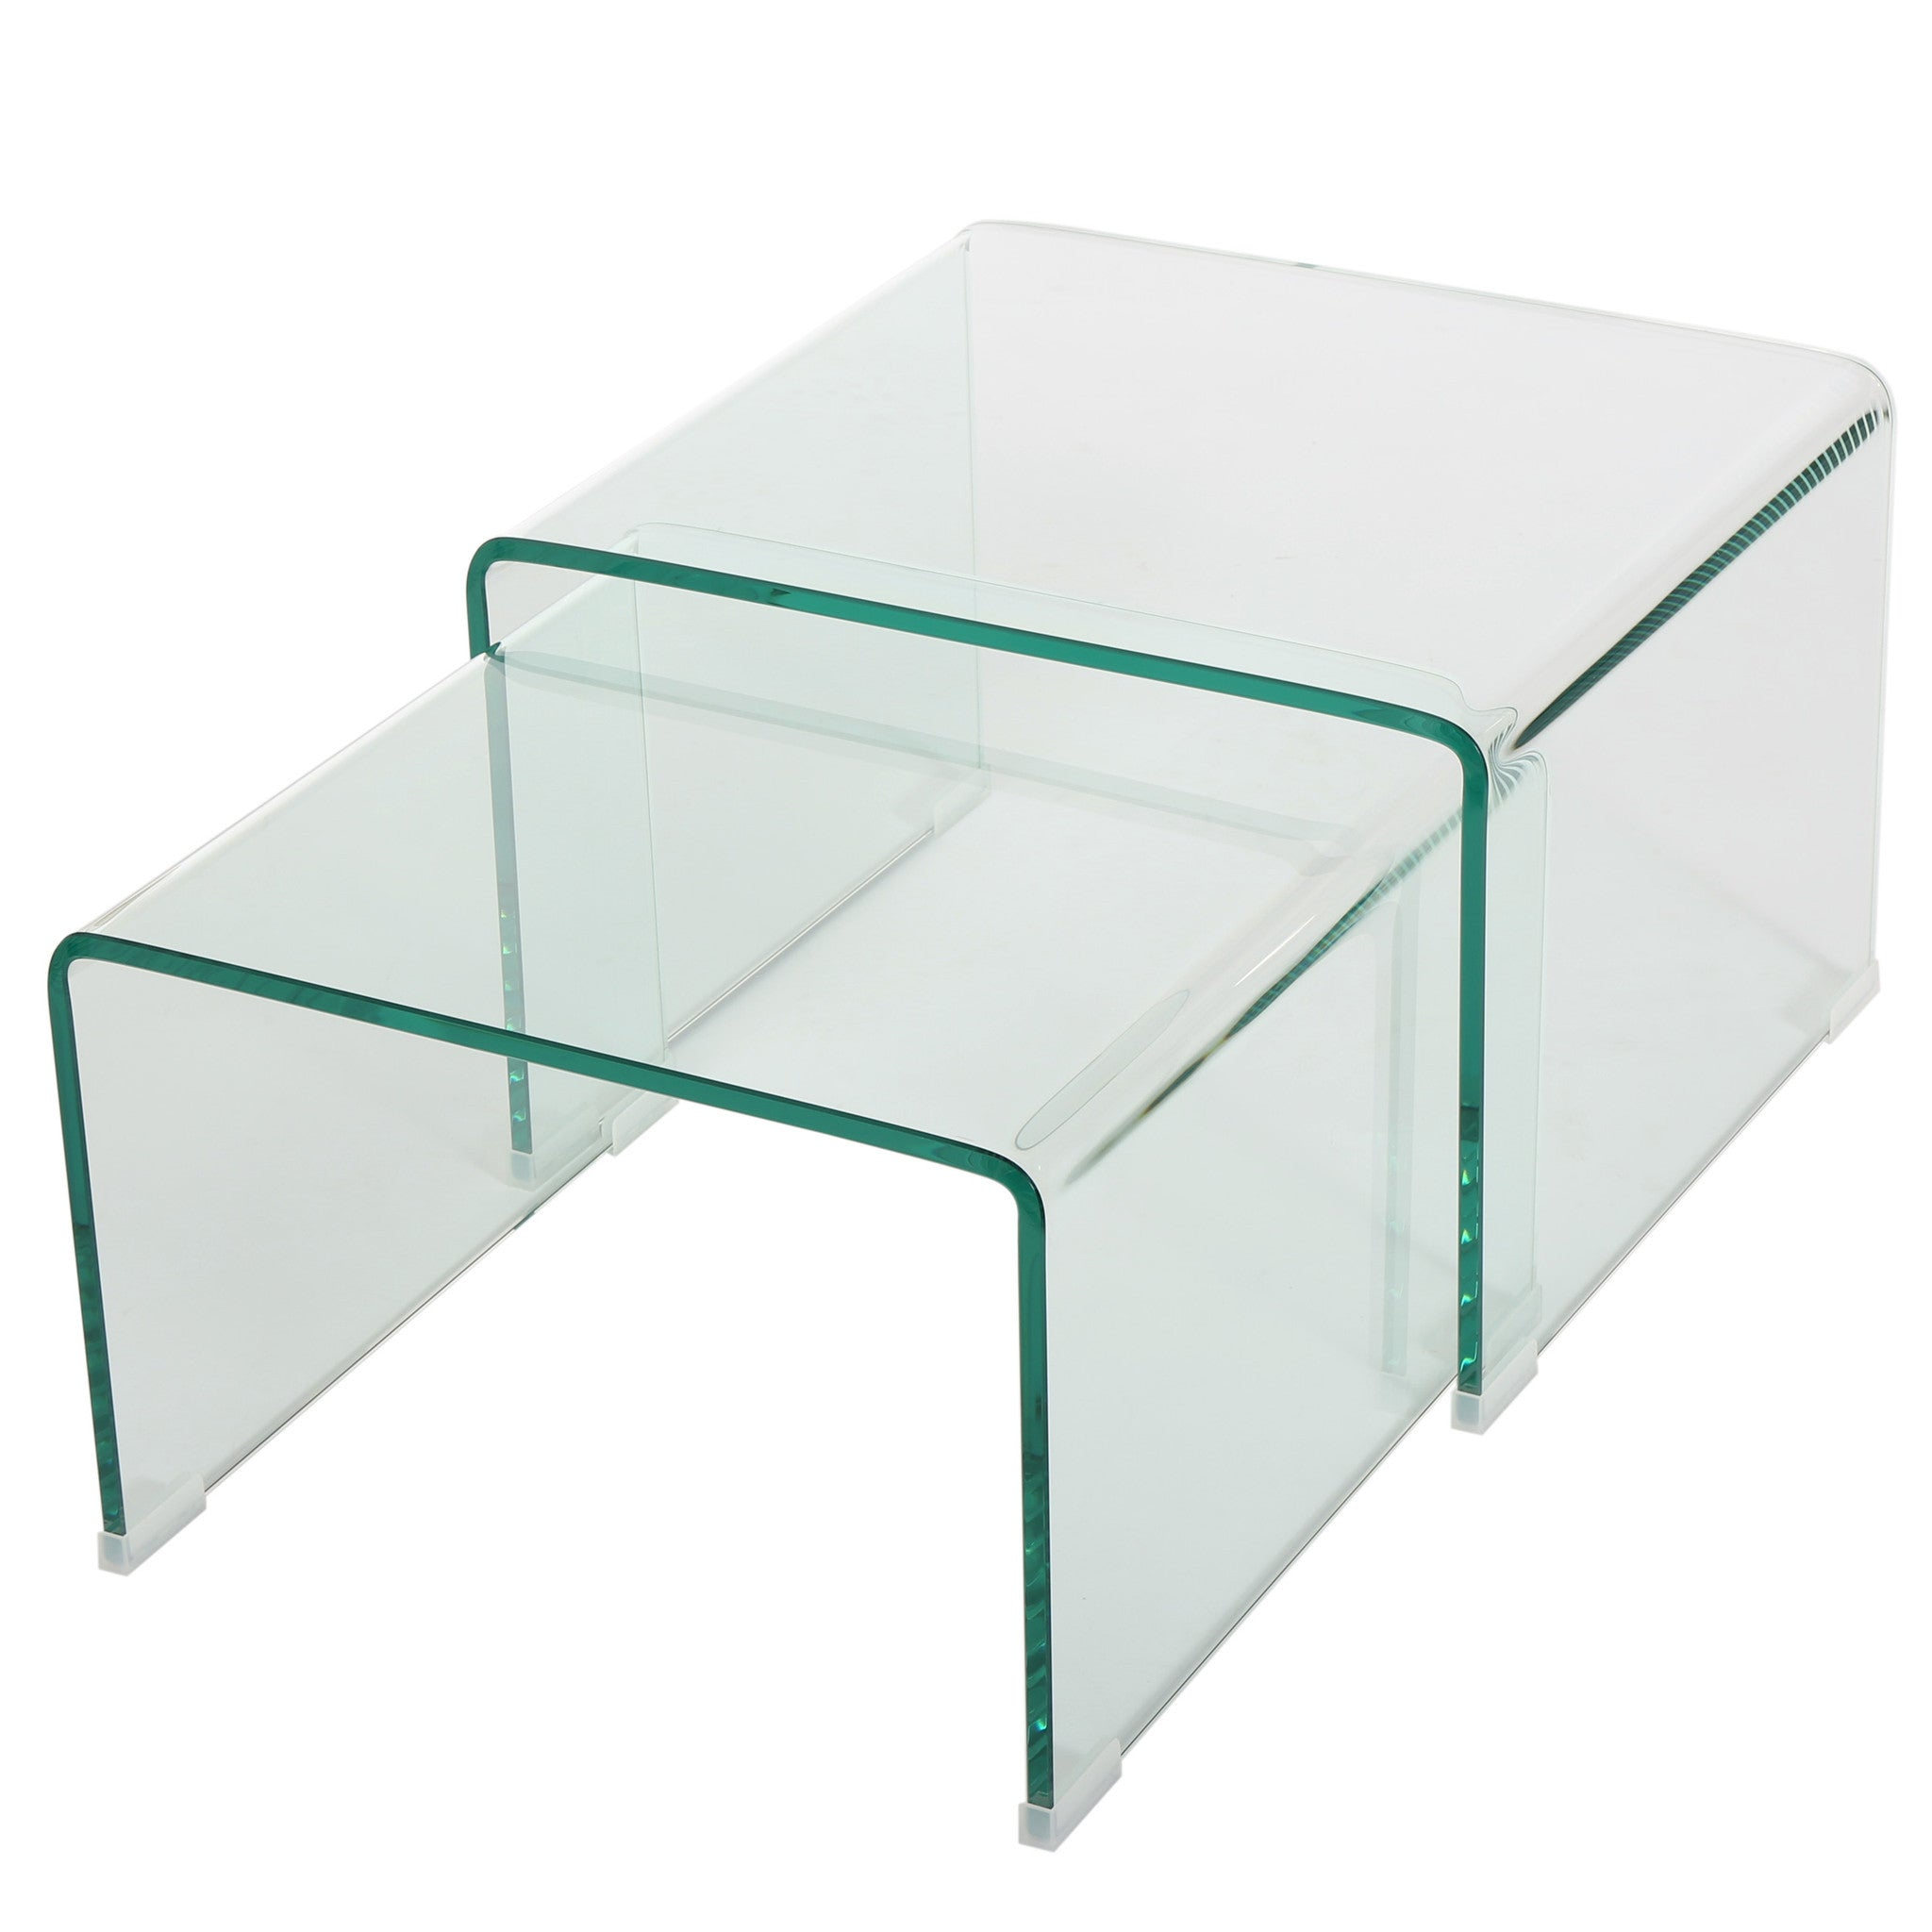 Angel See Through Clear Waterfall Glass Nesting Tables Set of 2